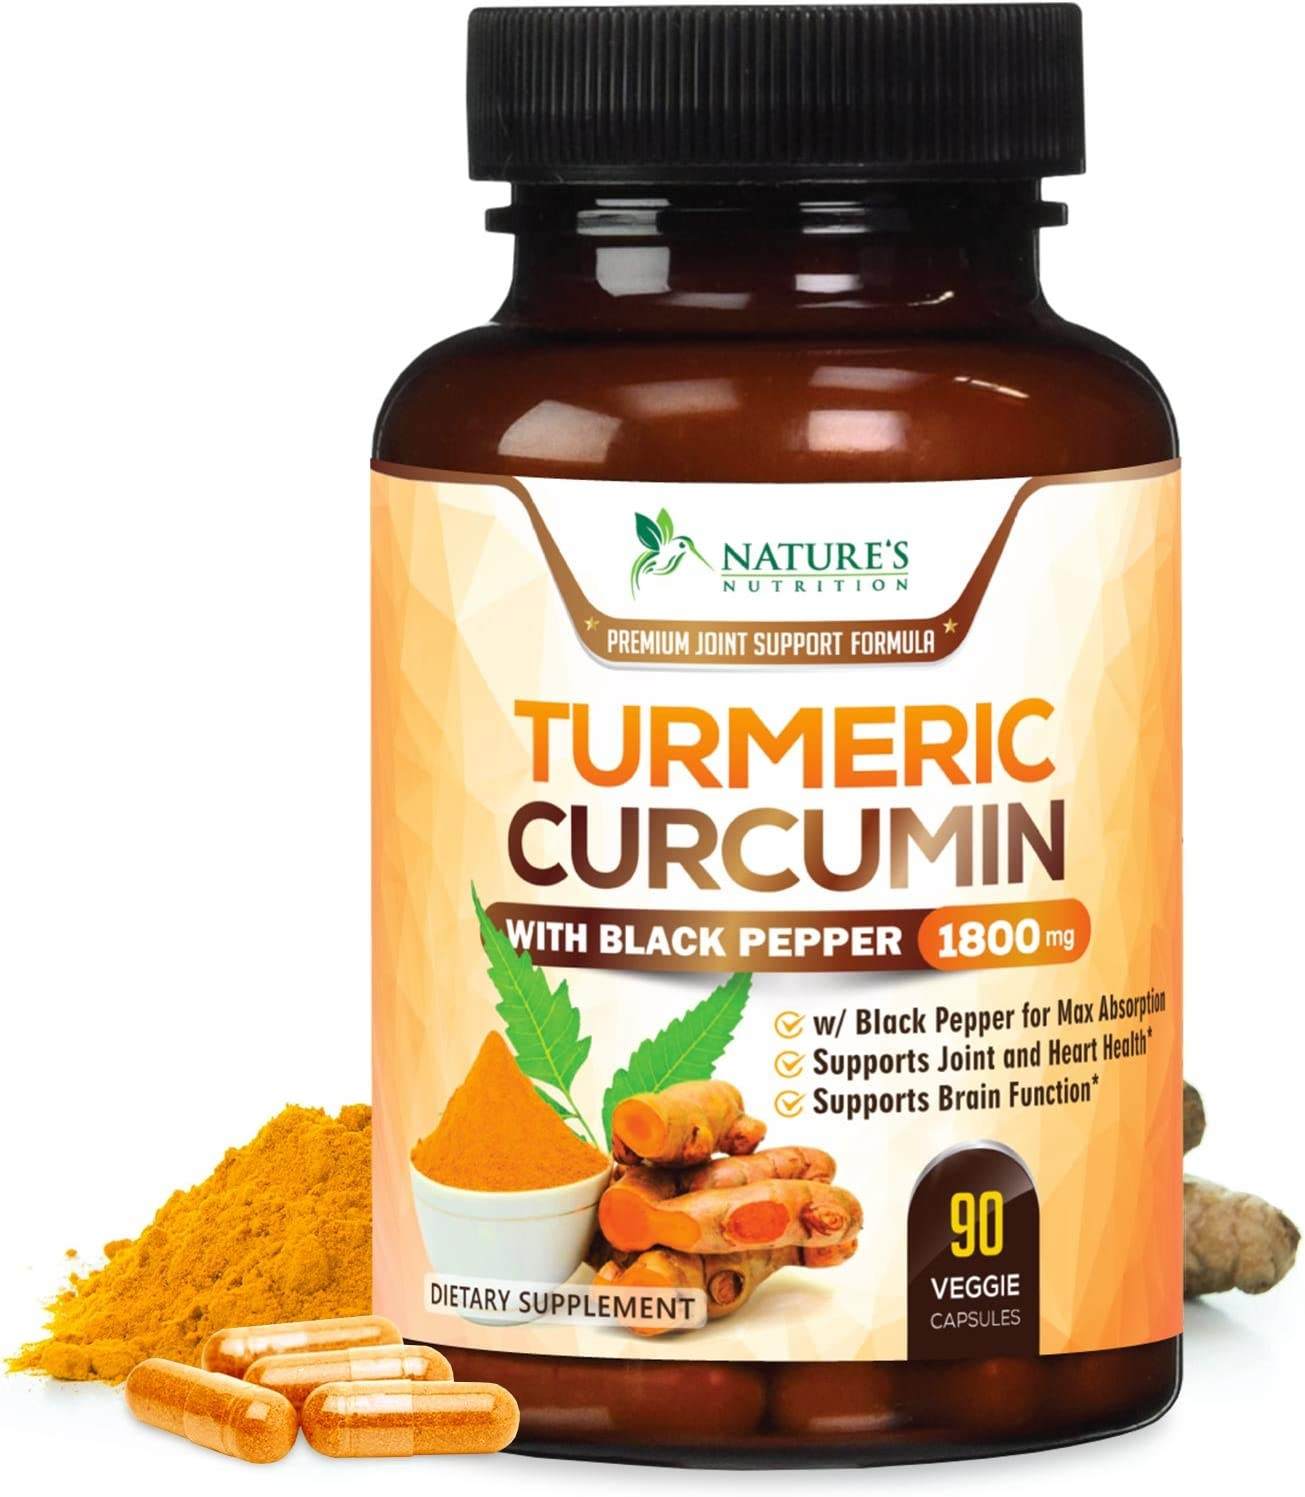 Turmeric Curcumin Max Potency 95 Curcuminoids 1800mg with Black Pepper Extract for Best Absorption, Anti-Inflammatory for Joint Relief, Turmeric Powder Supplement by Natures Nutrition – 90 Capsules